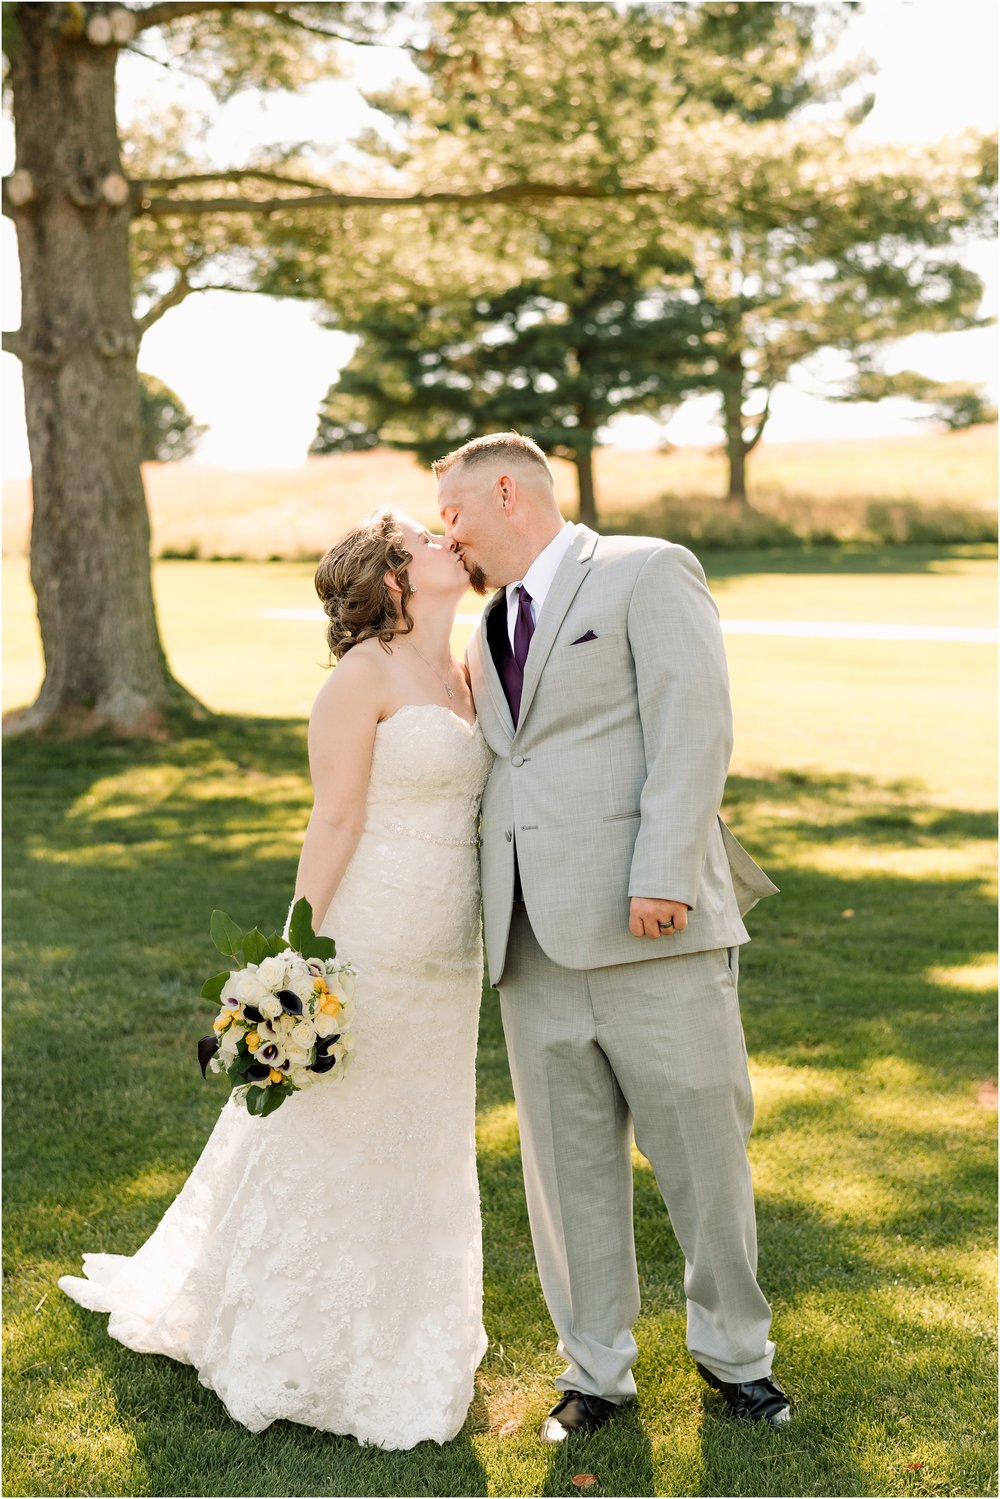 hannah leigh photography Piney Branch Golf Club Wedding Upperco MD_0466.jpg